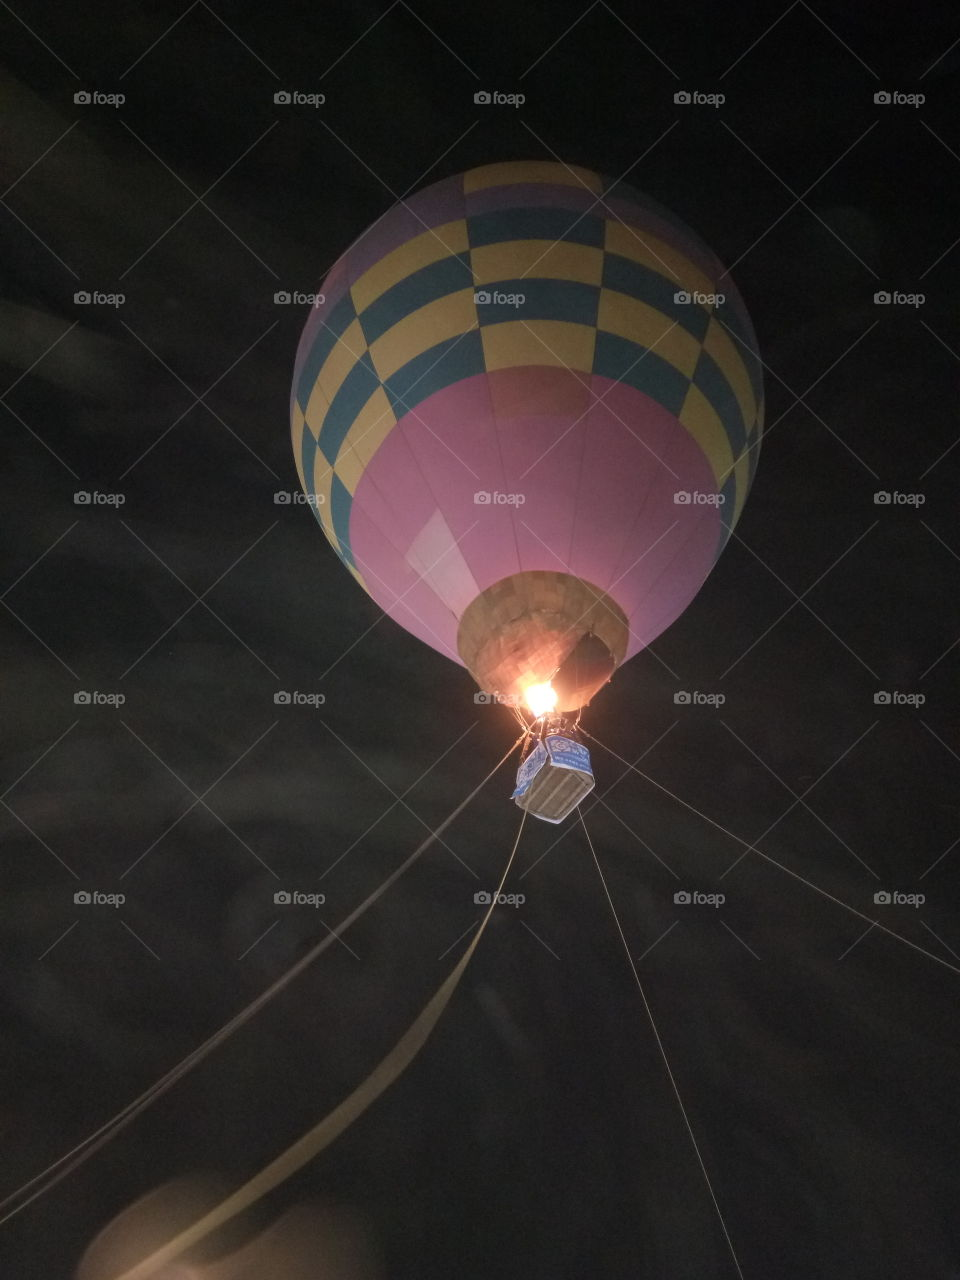 Ahot air balloonis alighter than airaircraft consisting of a bag, called an envelope, which contains heated air. Suspended beneath is agondolaorwicker basket(in some long-distance or high-altitude balloons, acapsule), which carries passengers and (usually) a source of heat, in most cases an open flame. The heated air inside the envelope makes itbuoyantsince it has alower densitythan the colder air outside the envelope. As with allaircraft, hot air balloons cannot fly beyond theatmosphere. Unlikegas balloons, the envelope does not have to be sealed at the bottom, since the air near the bottom of the envelope is at the same pressure as the surrounding air. In modern sport balloons the envelope is generally made fromnylonfabric and the inlet of the balloon (closest to the burner flame) is made from a fire resistant material such asNomex. Modern balloons have been made in all kinds of shapes, such as rocket ships and the shapes of various commercial products, though the traditional shape is used for most non-commercial, and many commercial, applications.  The hot air balloon is the first successful human-carryingflighttechnology. The first untethered manned hot air balloon flight was performed byJean-François Pilâtre de RozierandFrançois Laurent d'Arlandeson November 21, 1783, inParis,France,[1]in a balloon created by theMontgolfier brothers.[2]The first hot-air balloon flown in the Americas was launched from theWalnut Street Jailin Philadelphia on January 9, 1793 by the French aeronautJean Pierre Blanchard.[3]Hot air balloons that can be propelled through the air rather than simply drifting with thewindare known asthermal airships. Ahot air balloonis alighter than airaircraft consisting of a bag, called an envelope, which contains heated air. Suspended beneath is agondolaorwicker basket(in some long-distance or high-altitude balloons, acapsule), which carries passengers and (usually) a source of heat, in most cases an open..